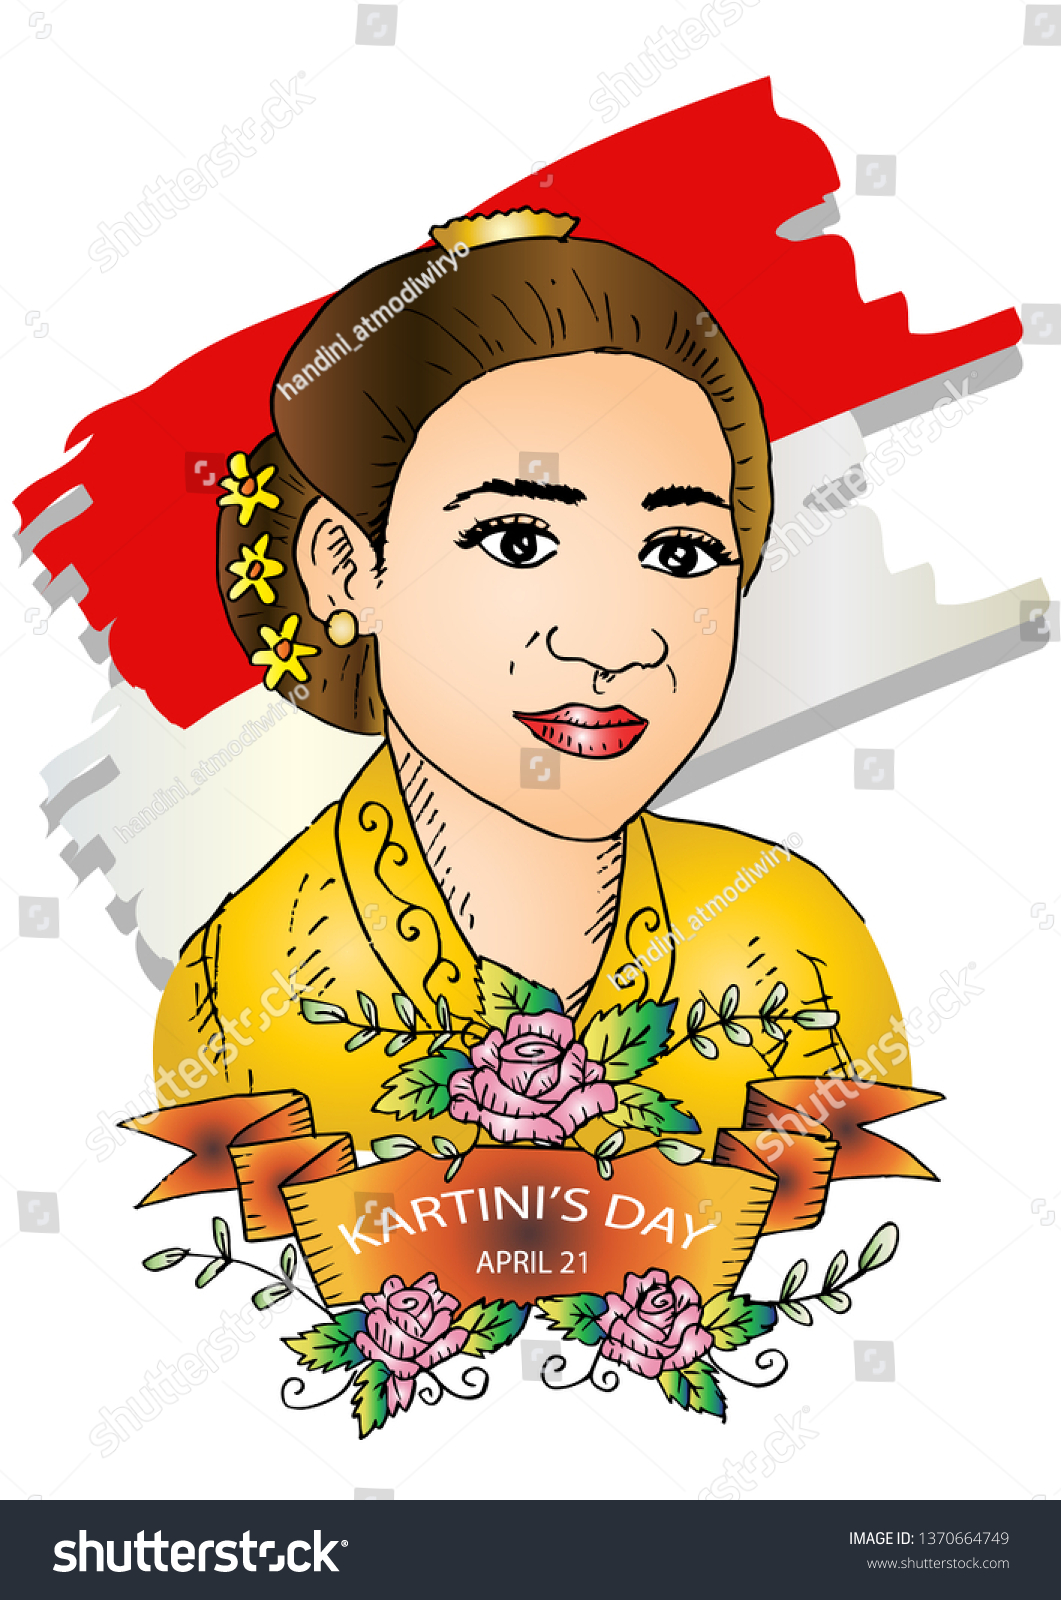 kartini day r kartini heroes women stock vector royalty free 1370664749 https www shutterstock com image vector kartini day r heroes women human 1370664749